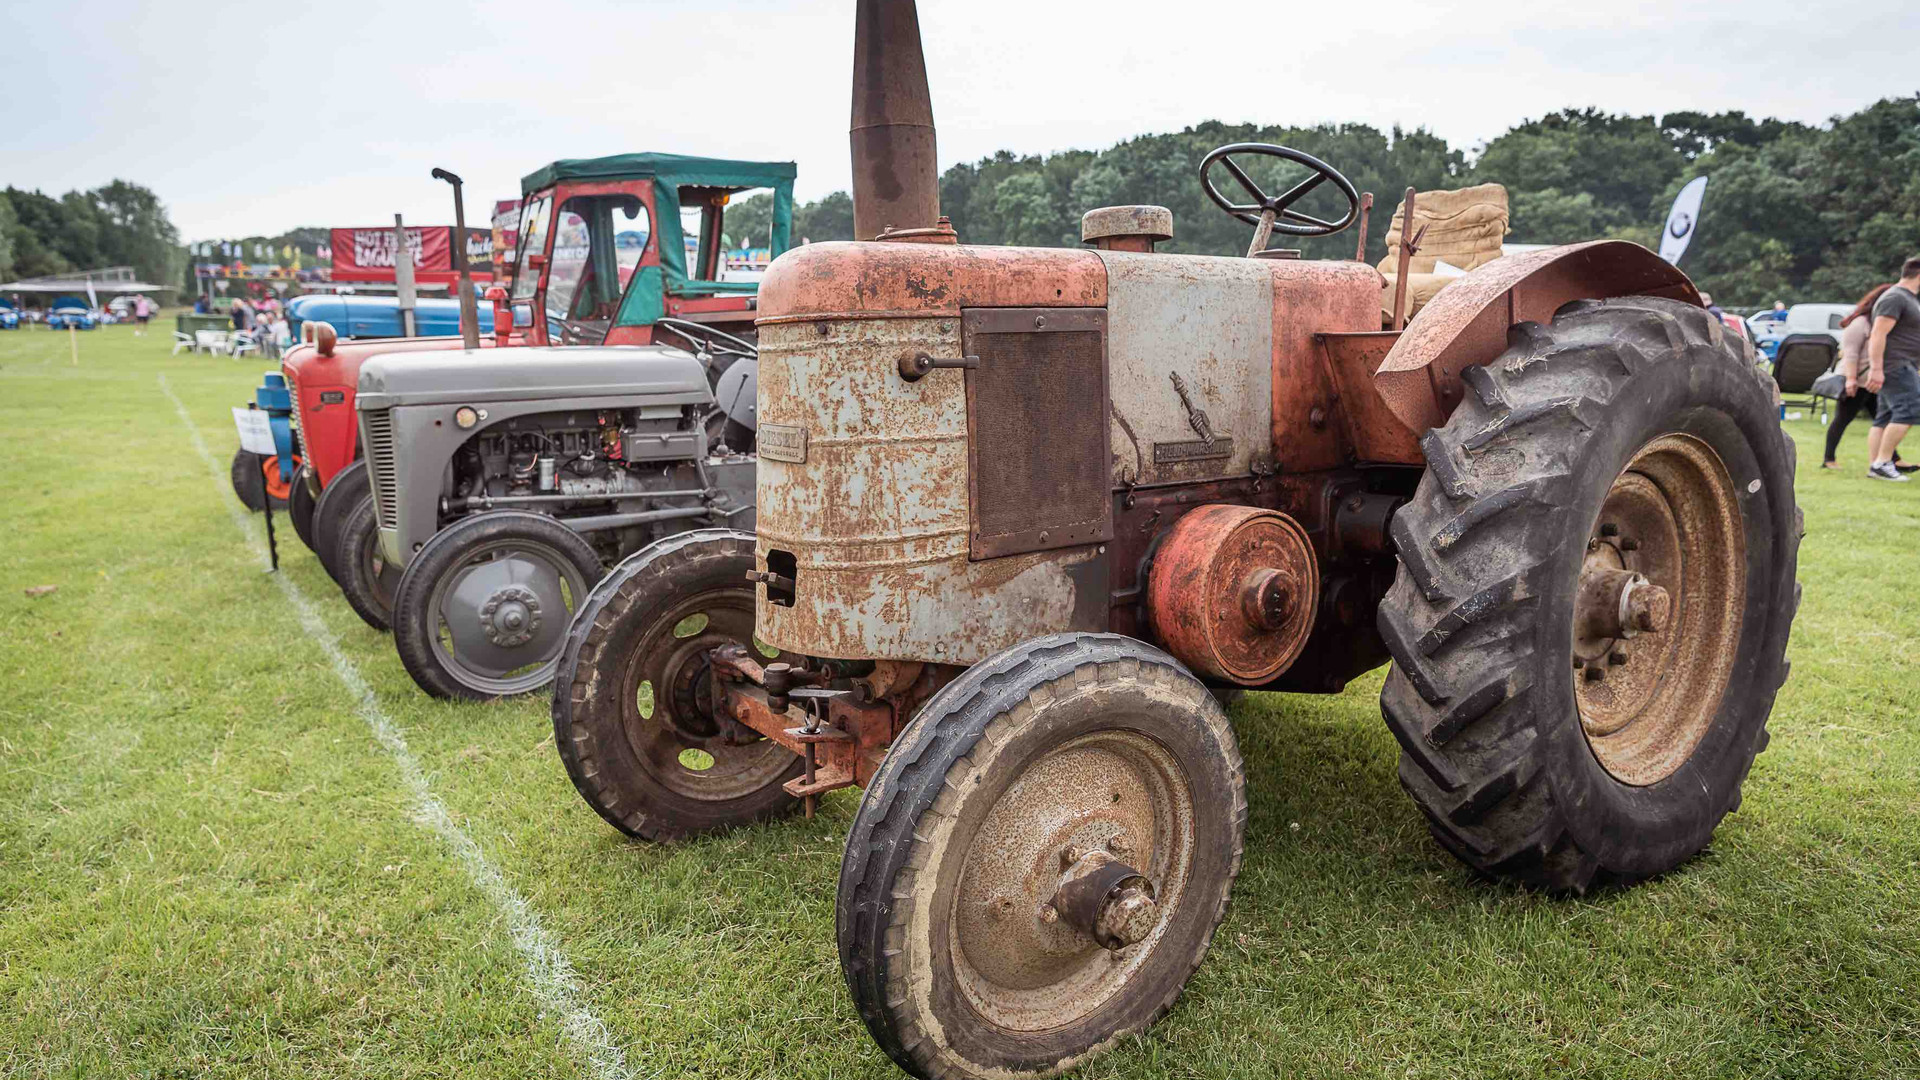 bromley-pageant-vintage-classic-tractor.